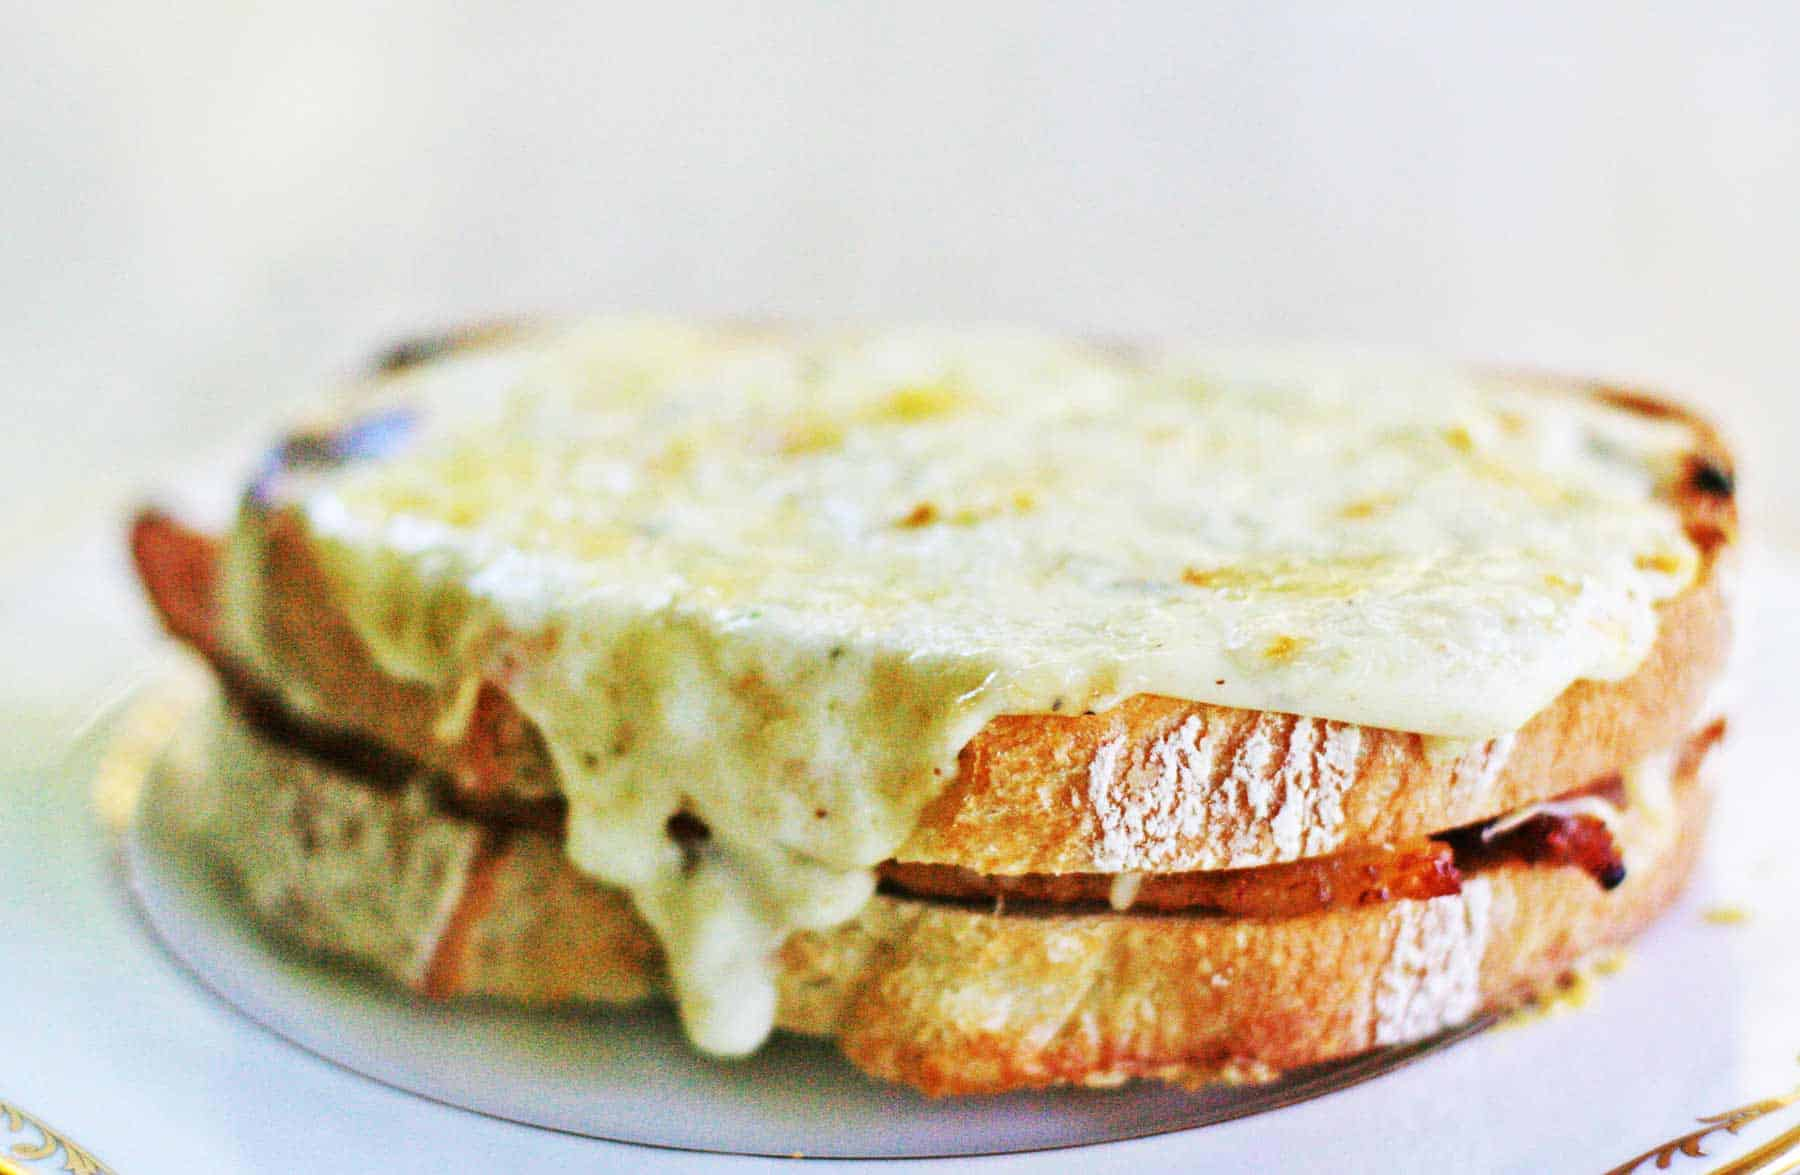 Croque monsieur with homemade beschamel sauce